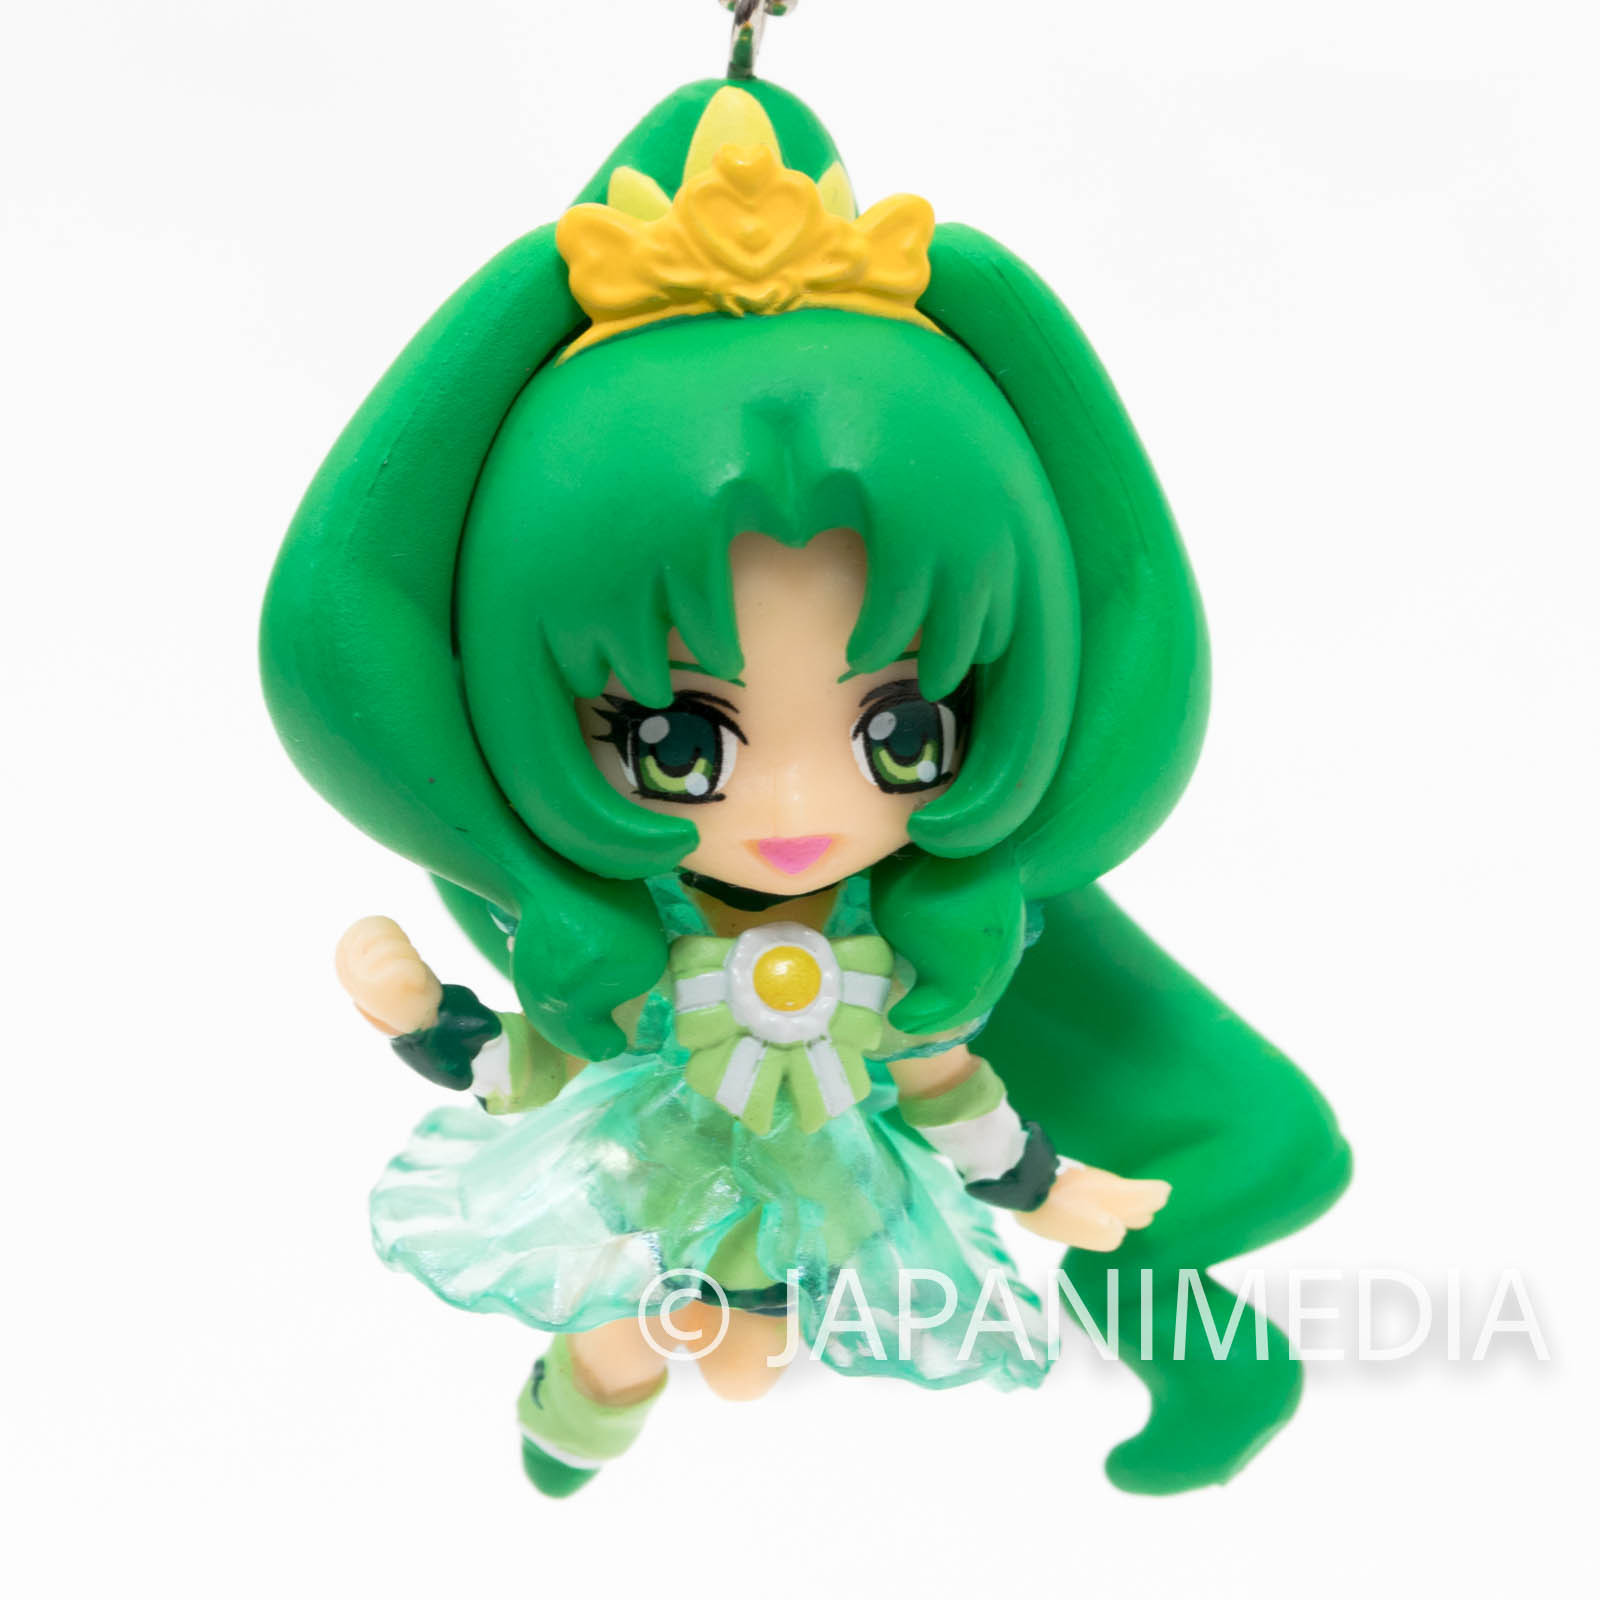 Smile PreCure! Princess March PreCure Mascot Figure Ball Keychain JAPAN ANIME